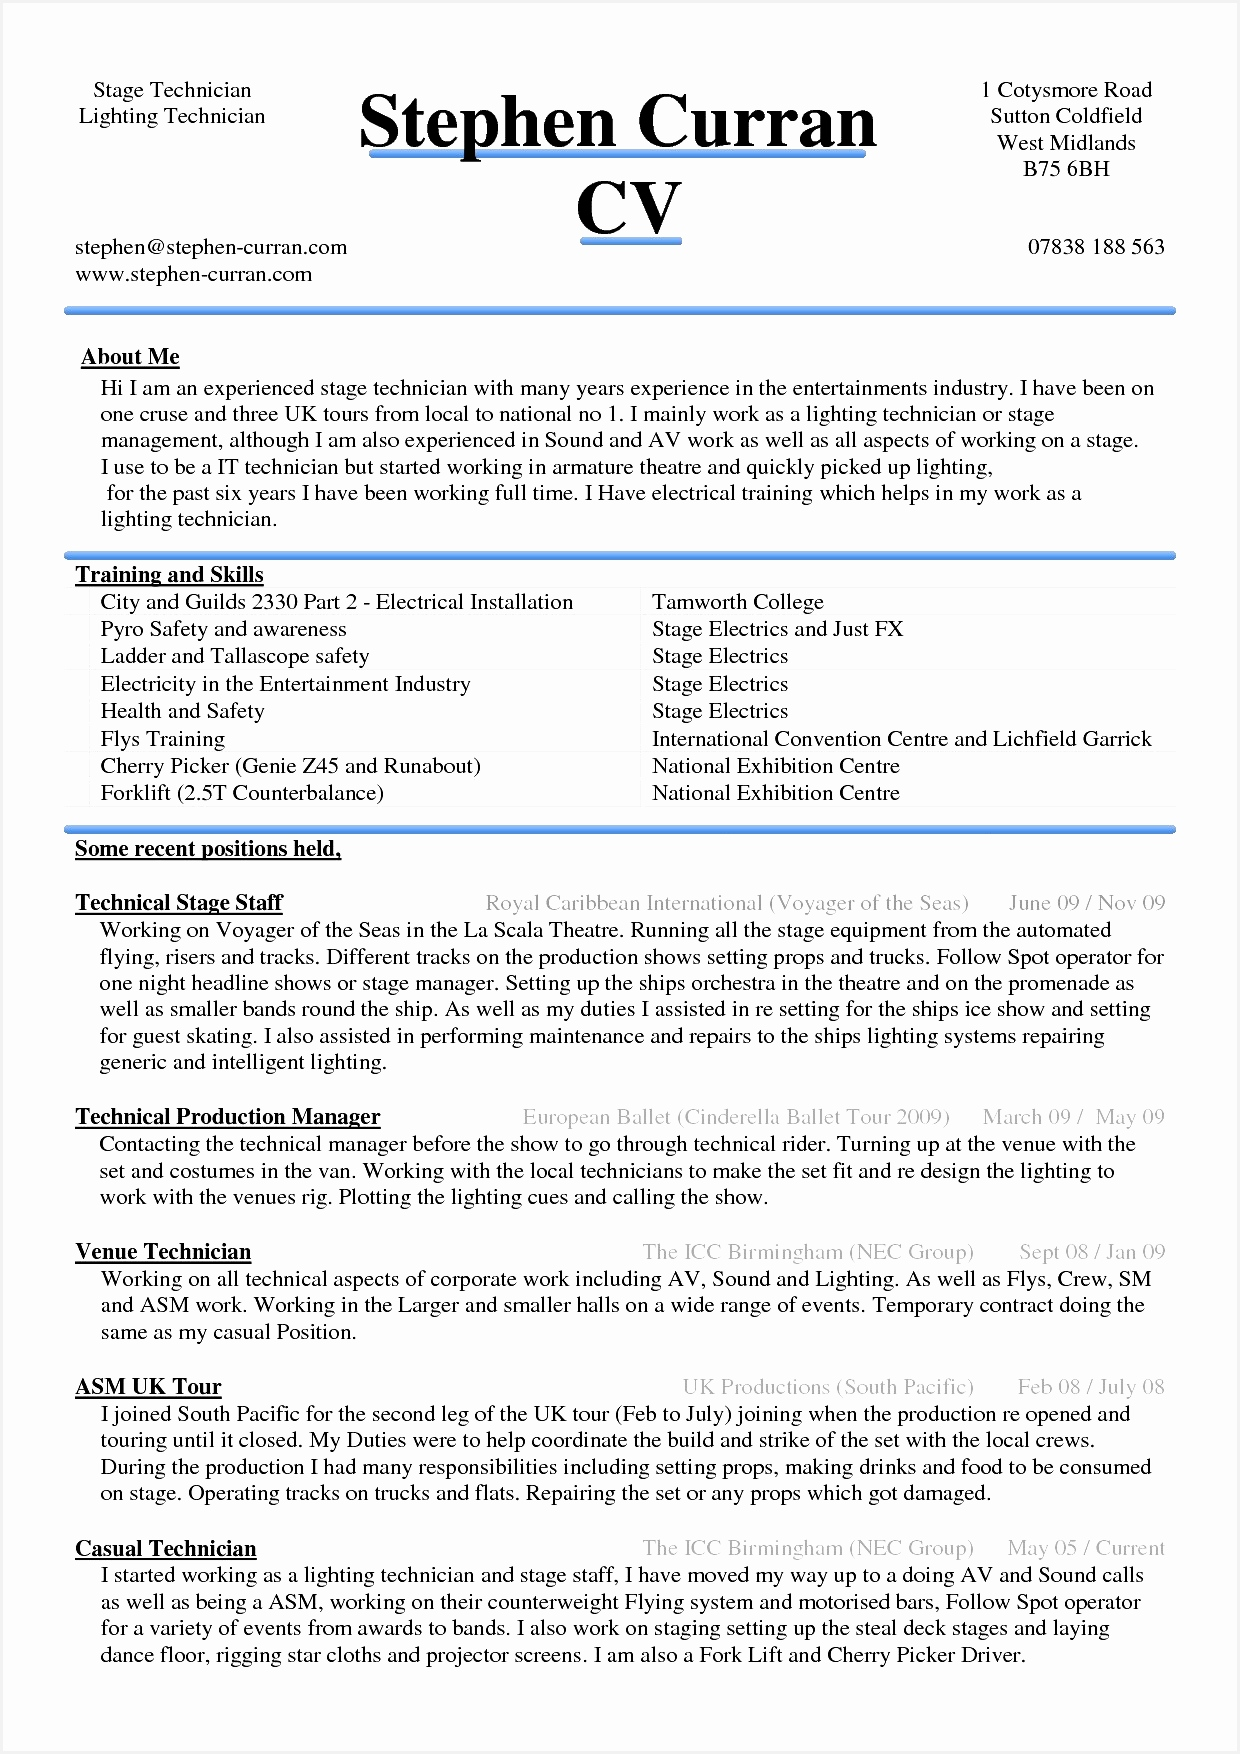 Federal Resume Template 6 Resume Template Word Free Samples Examples And Format